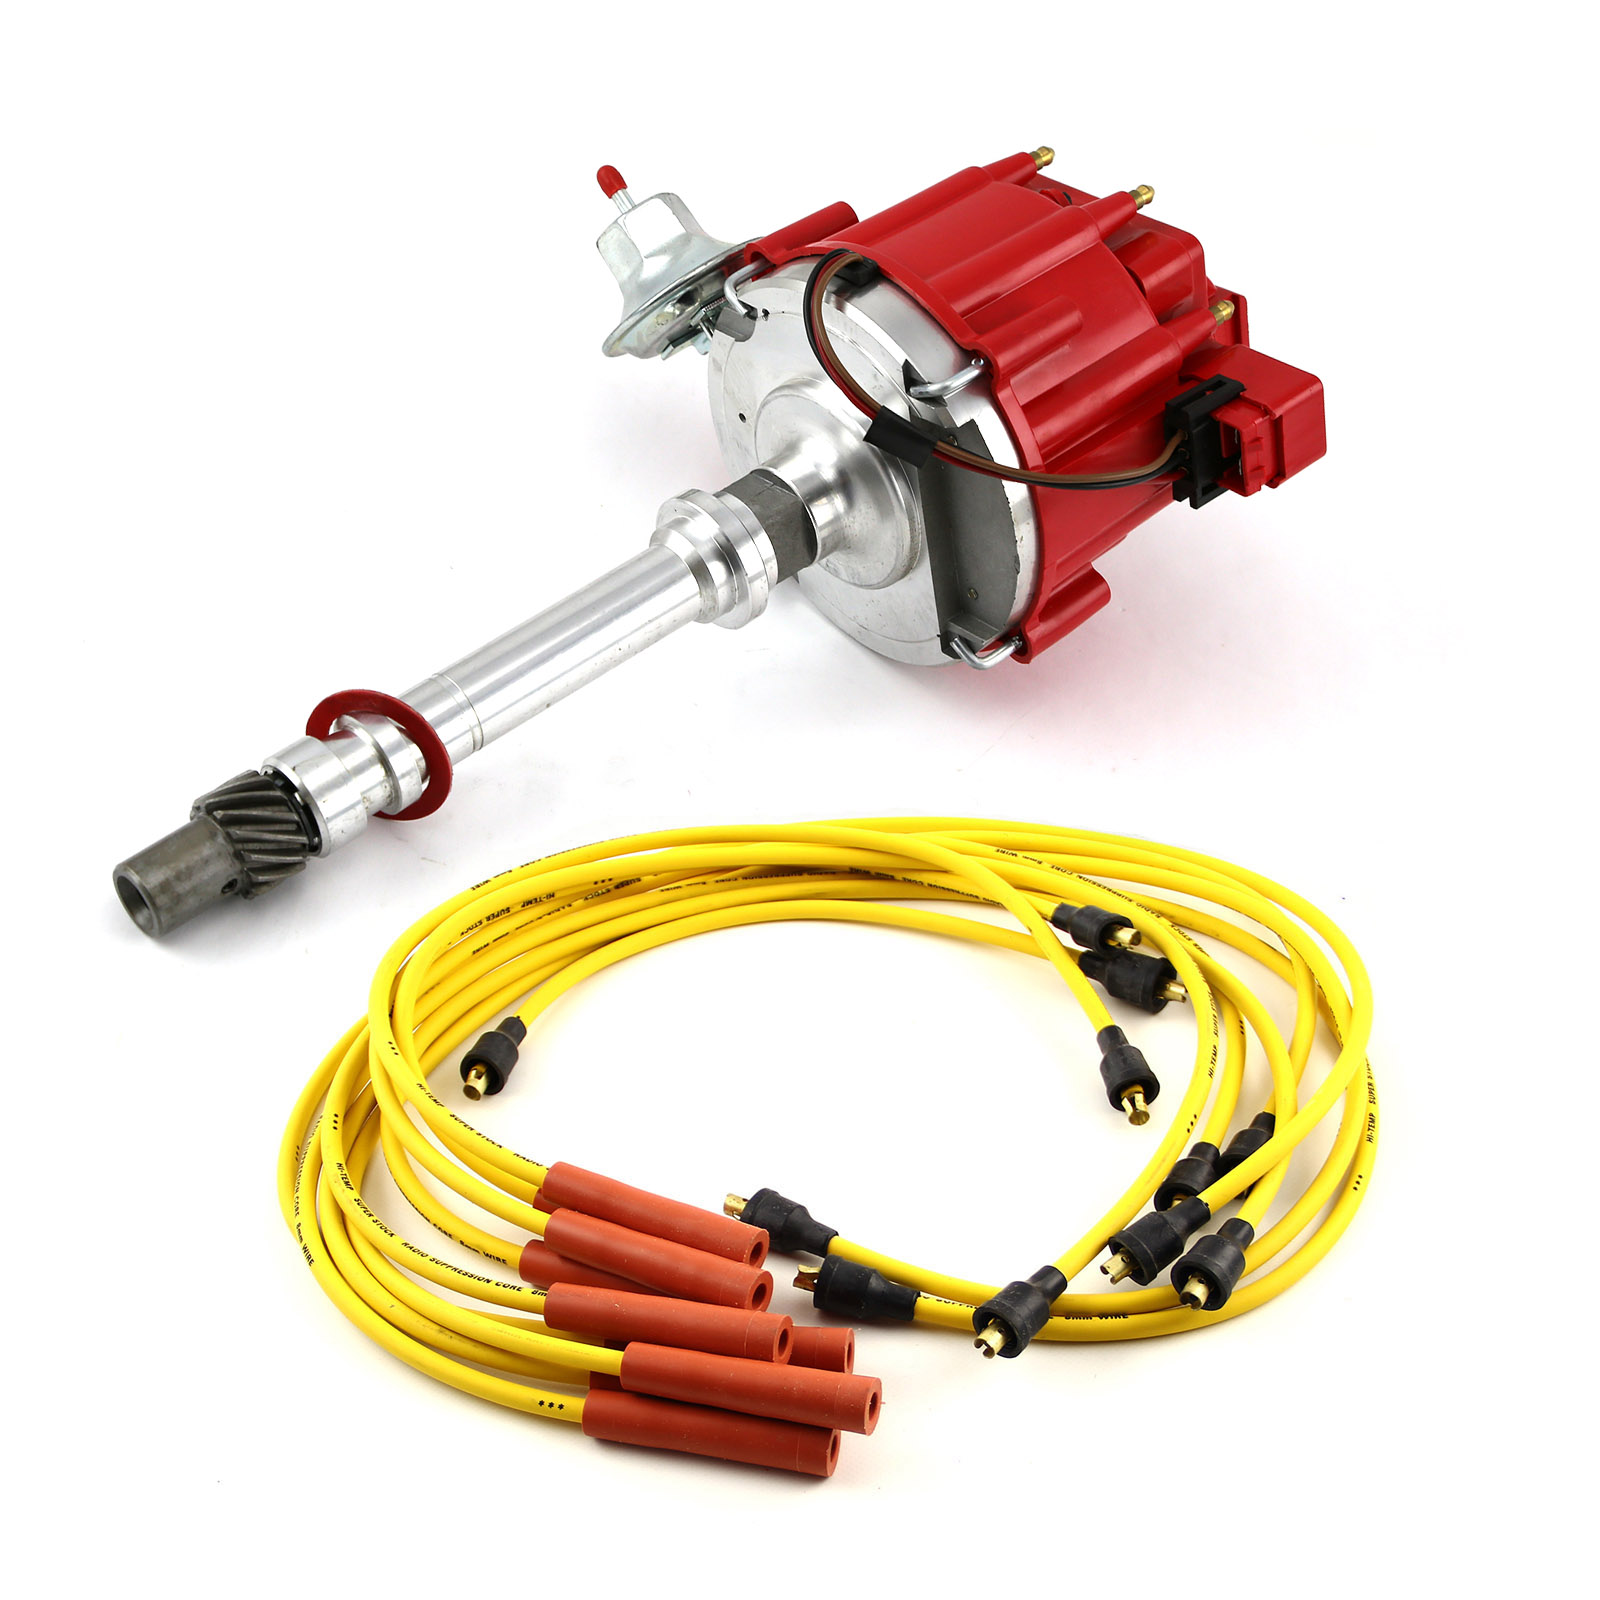 delco remy hei distributor wiring diagram detailed heart labeled with functions chevy plug get free image